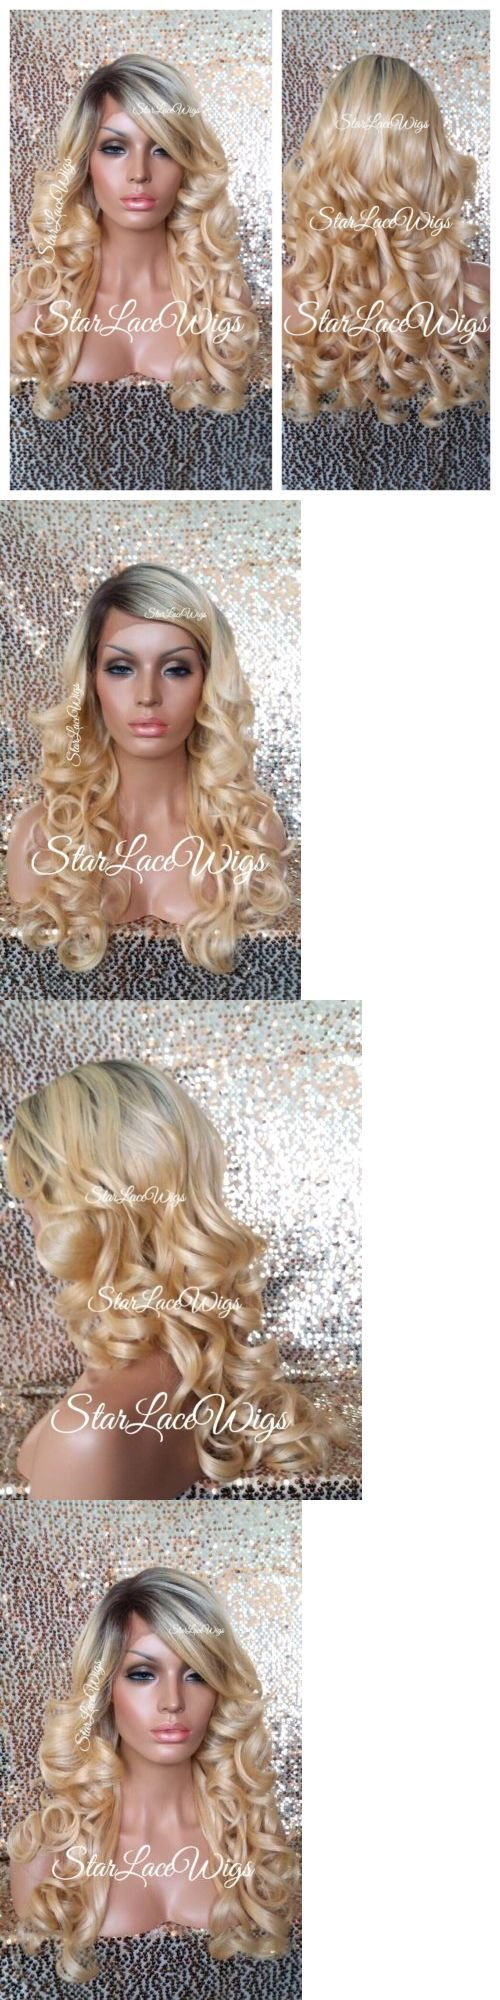 Wigs and Hairpieces: Human Hair Blend Golden Blonde Dark Root Lace Front Wig Curly Bangs Heat Safe Ok -> BUY IT NOW ONLY: $99 on eBay!